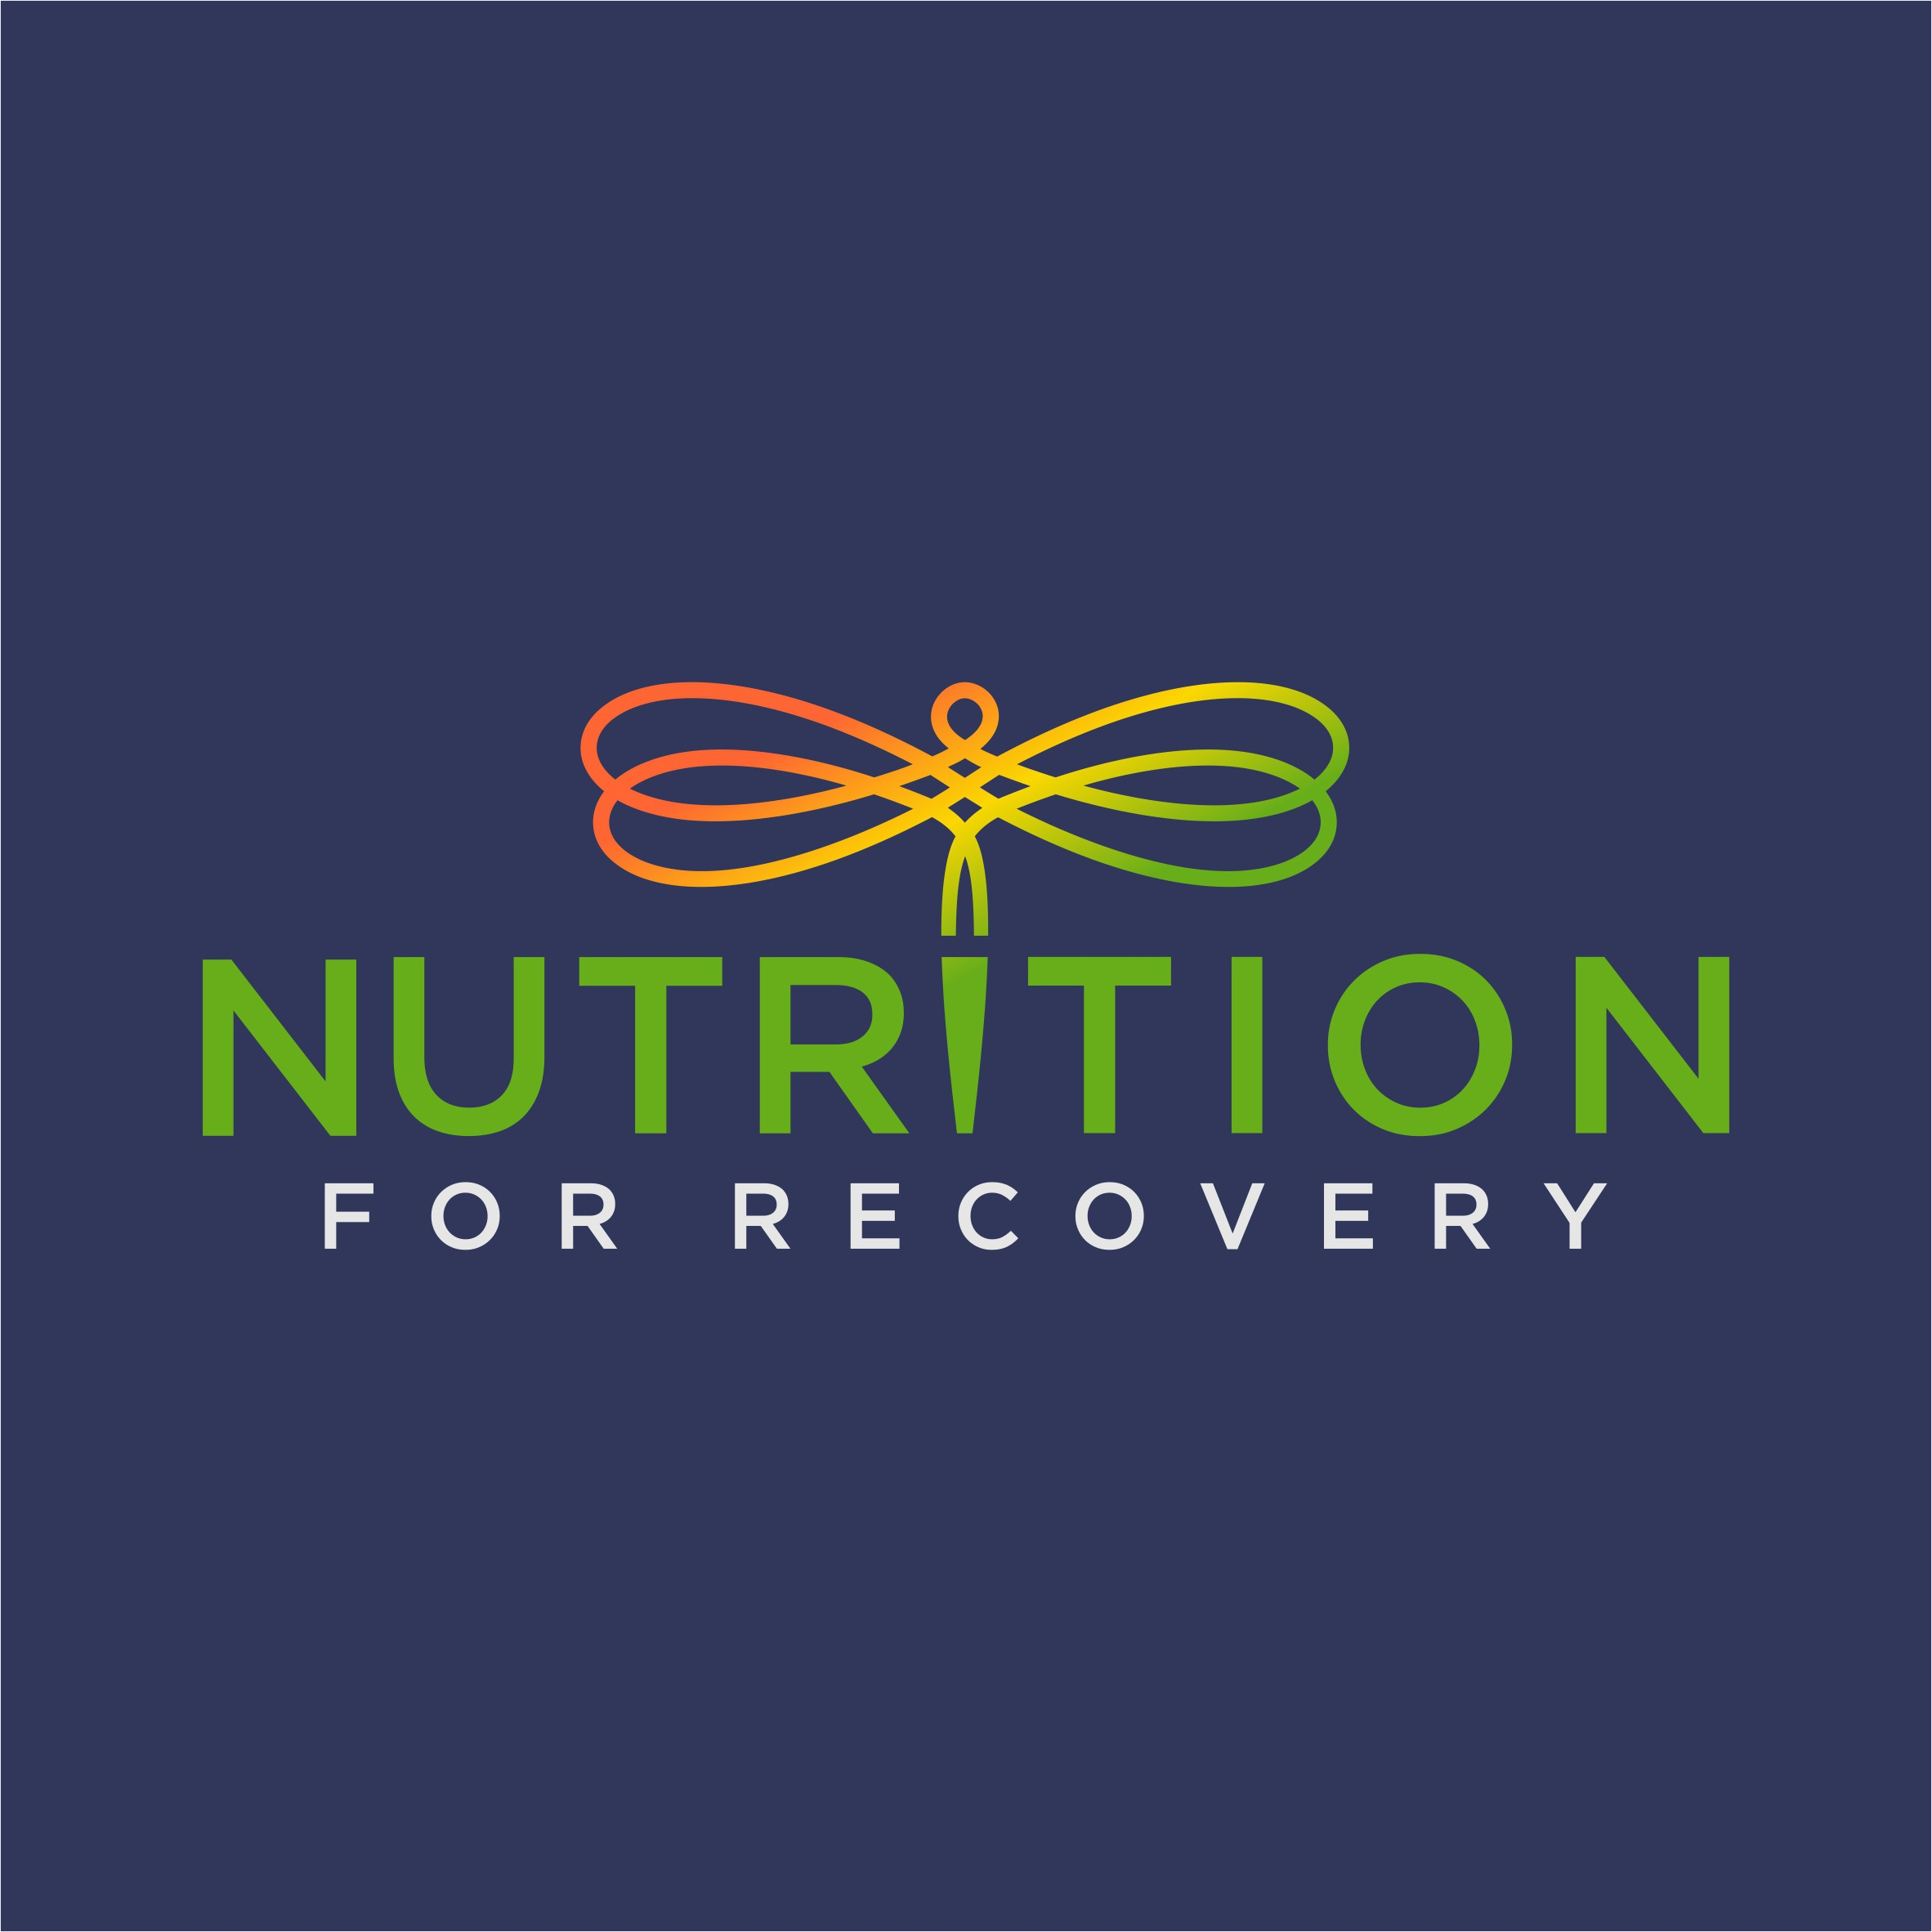 Nutrition Consultant logo: Health/Wellness, Freedom, Recovery, Thrive